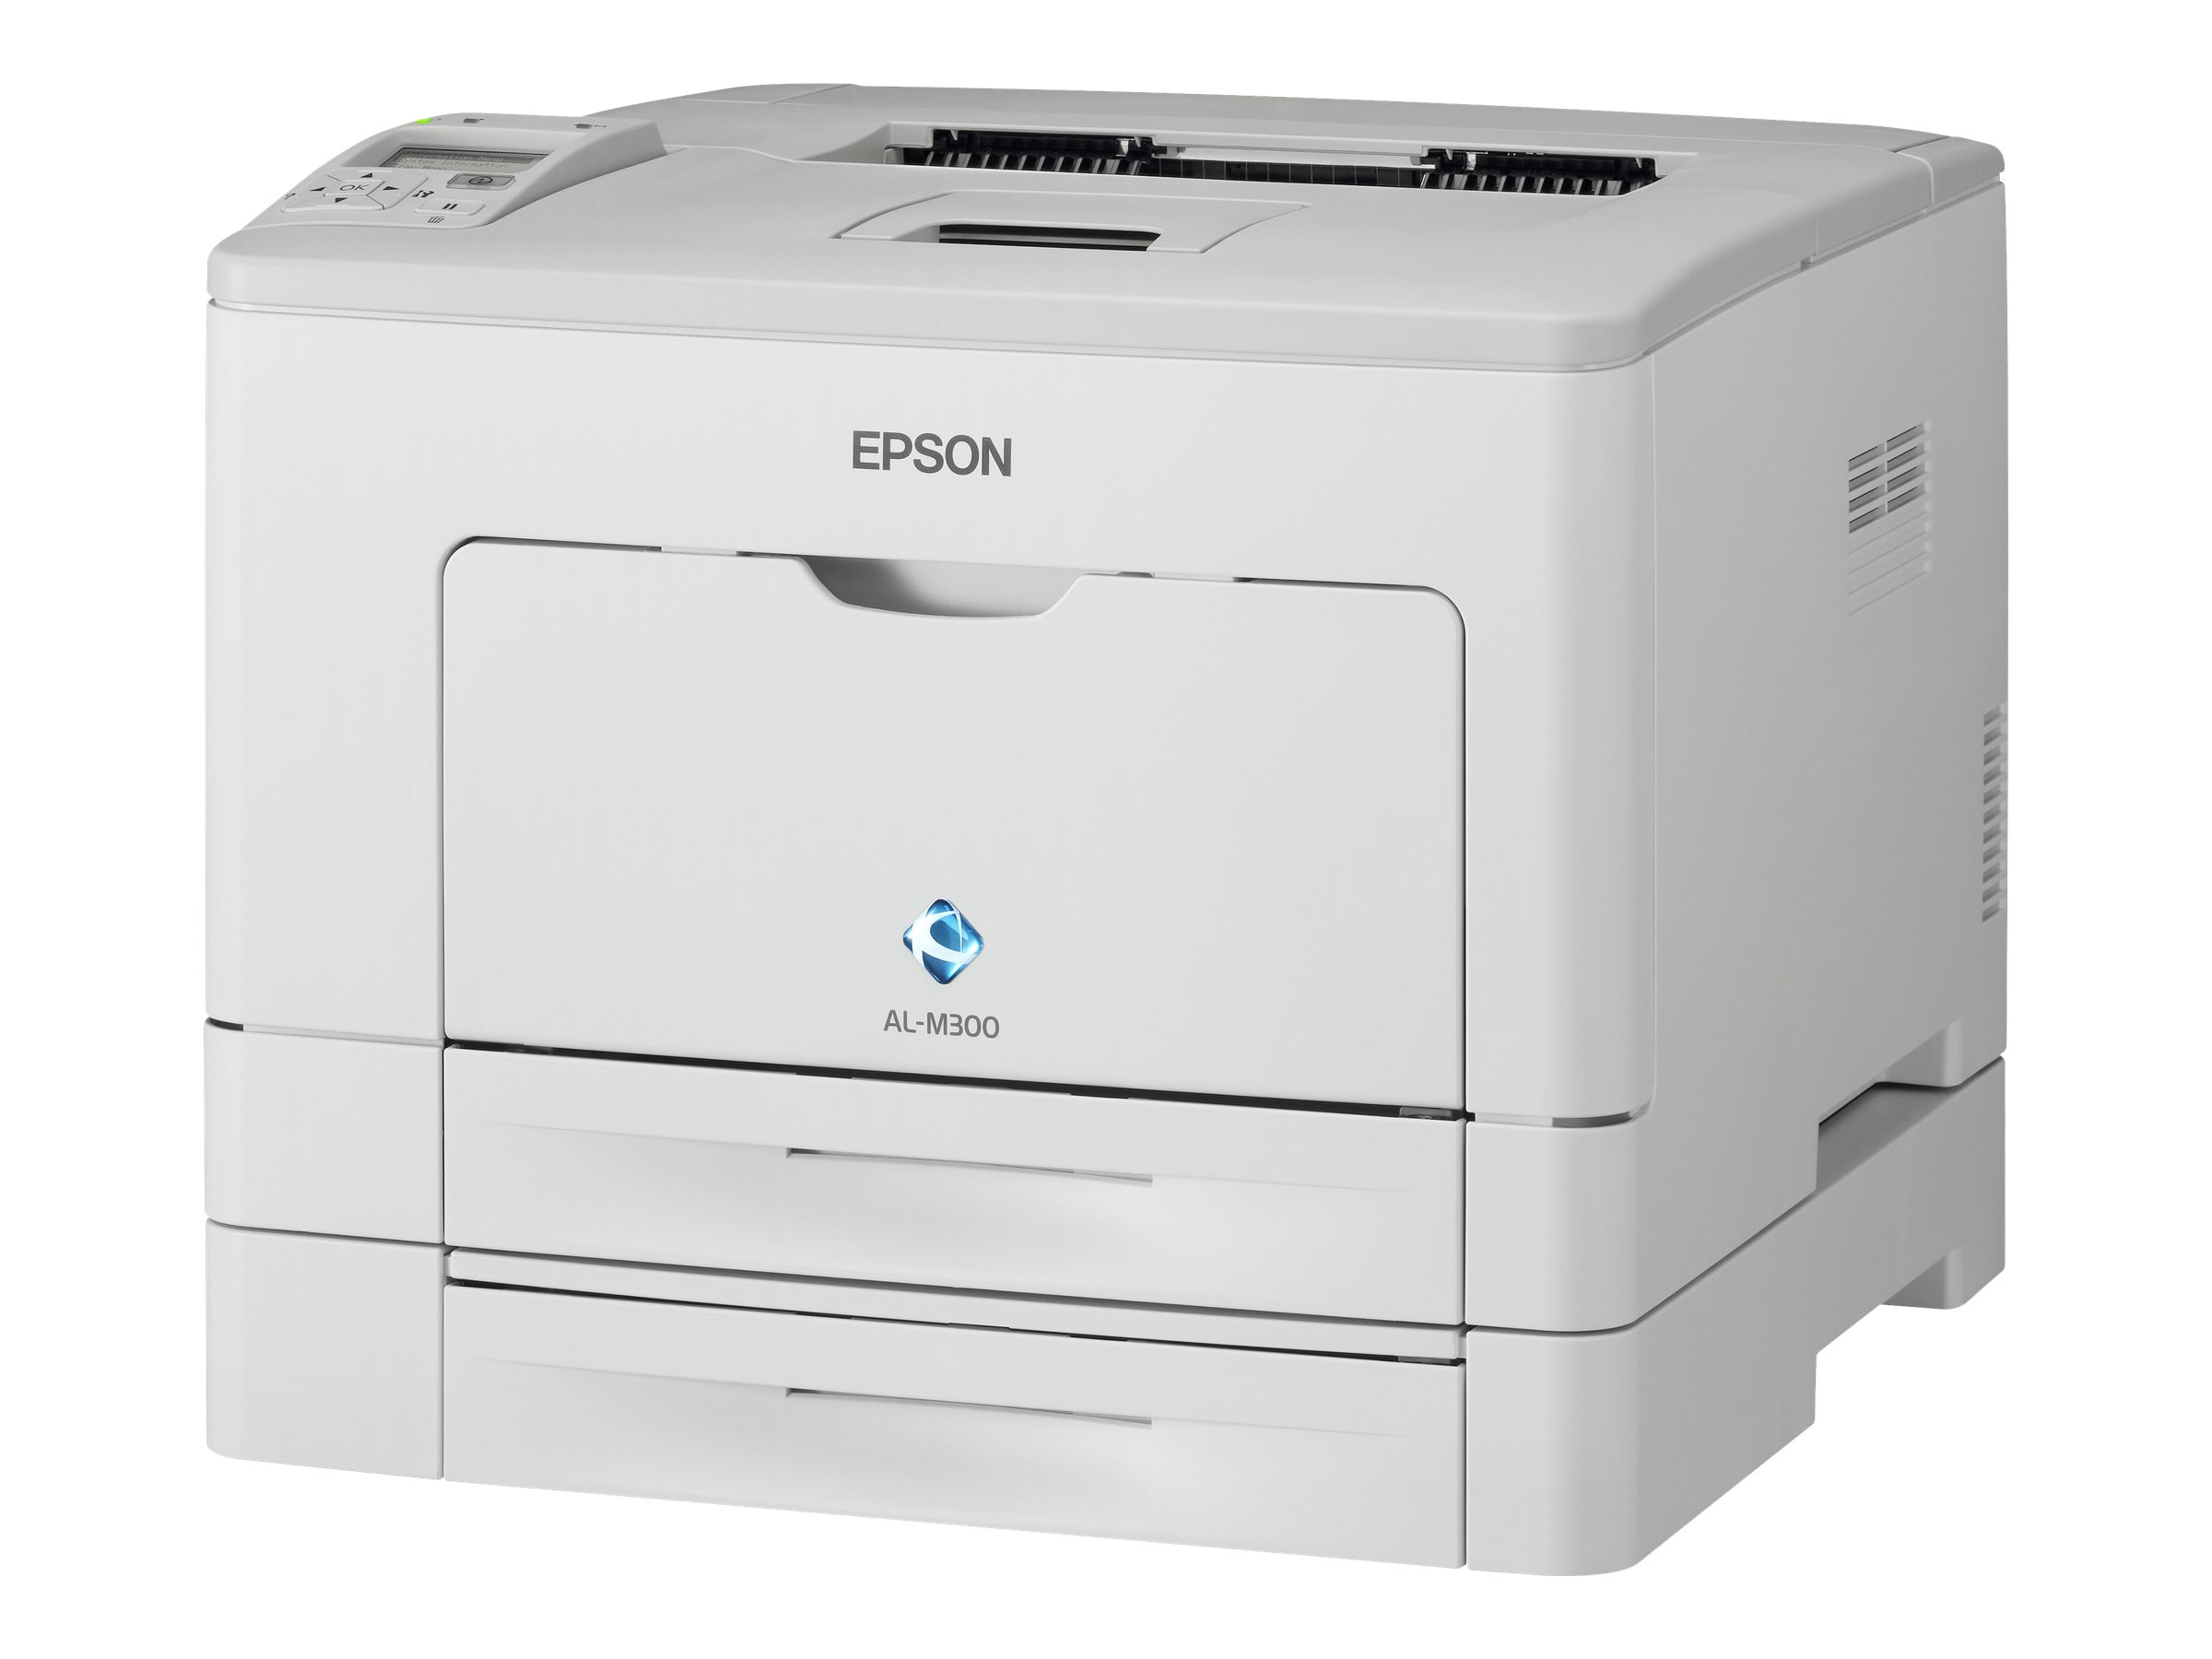 epson workforce al m300dtn imprimante monochrome laser imprimantes laser neuves. Black Bedroom Furniture Sets. Home Design Ideas